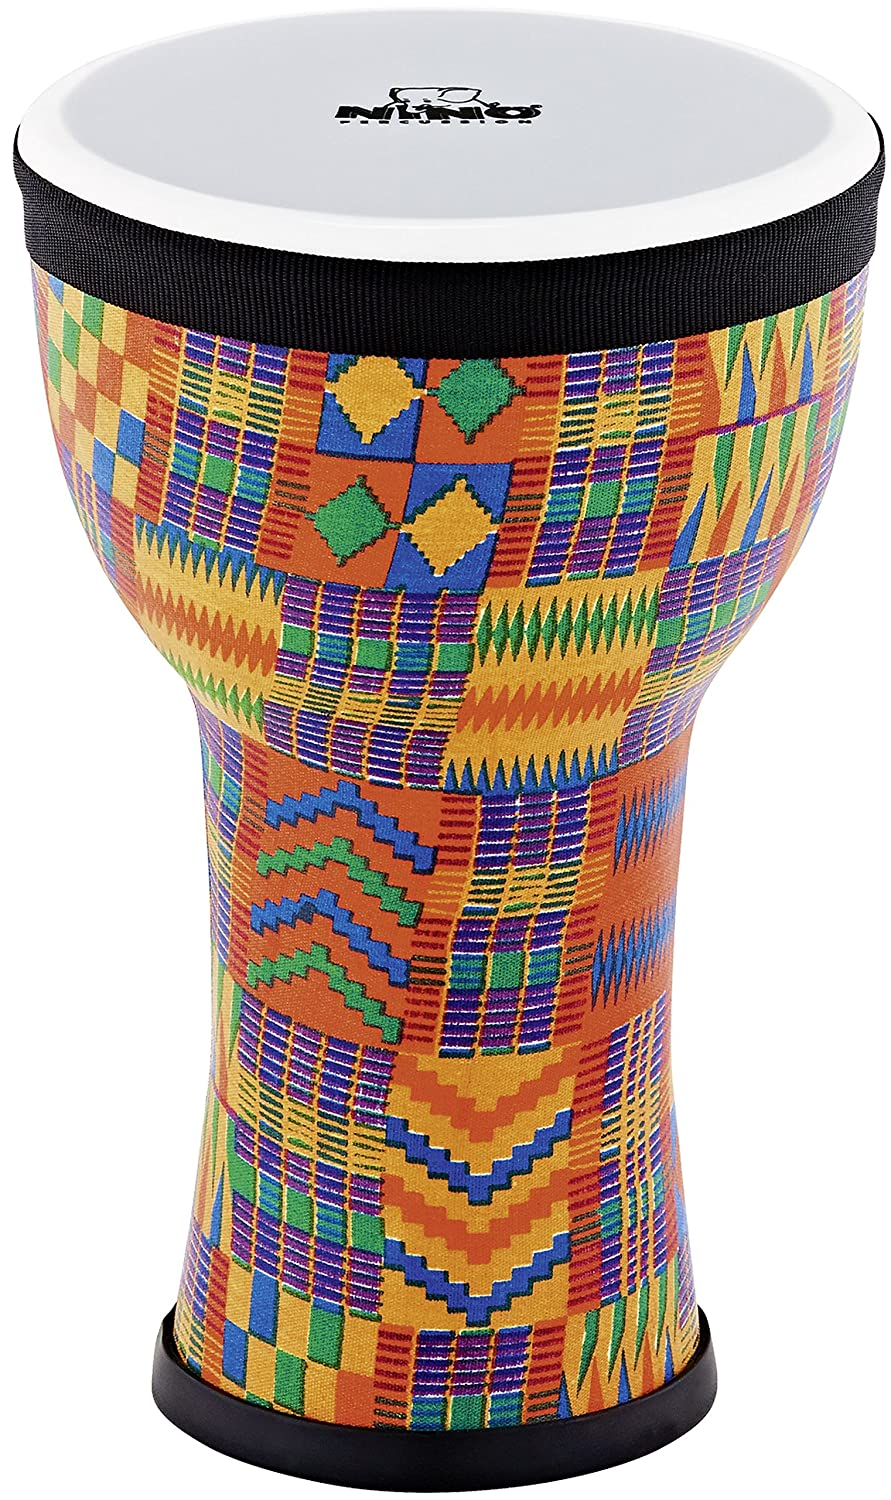 for Classroom Music or Playing at Home inch Blue Berry Finish NOT MADE IN CHINA 2-YEAR WARRANTY NINO-EMDJ-BB Compact Size Nino Percussion Kids Djembe 100/% Synthetic Pre-Tuned